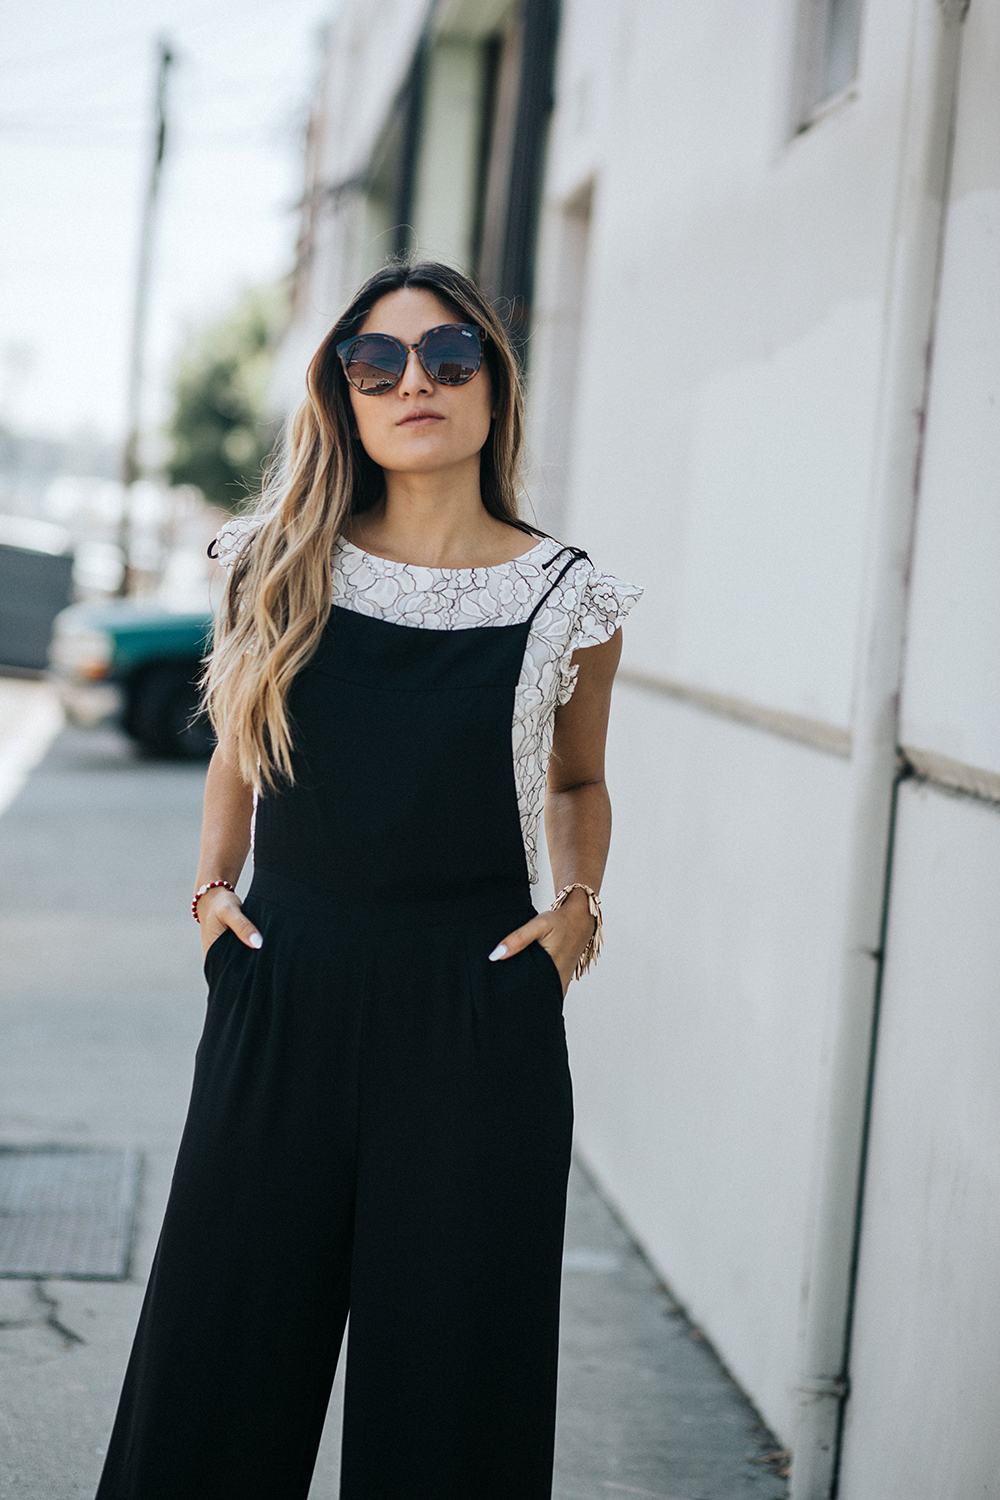 All Dressed Up | Paper Crown, paper crown, lauren conrad, jumpsuit, blouse, dressy, dressed up, ootd, melrodstyle, la blogger, latina blogger, hispanic blogger, mexican blogger, blogger, style, street style, dtla